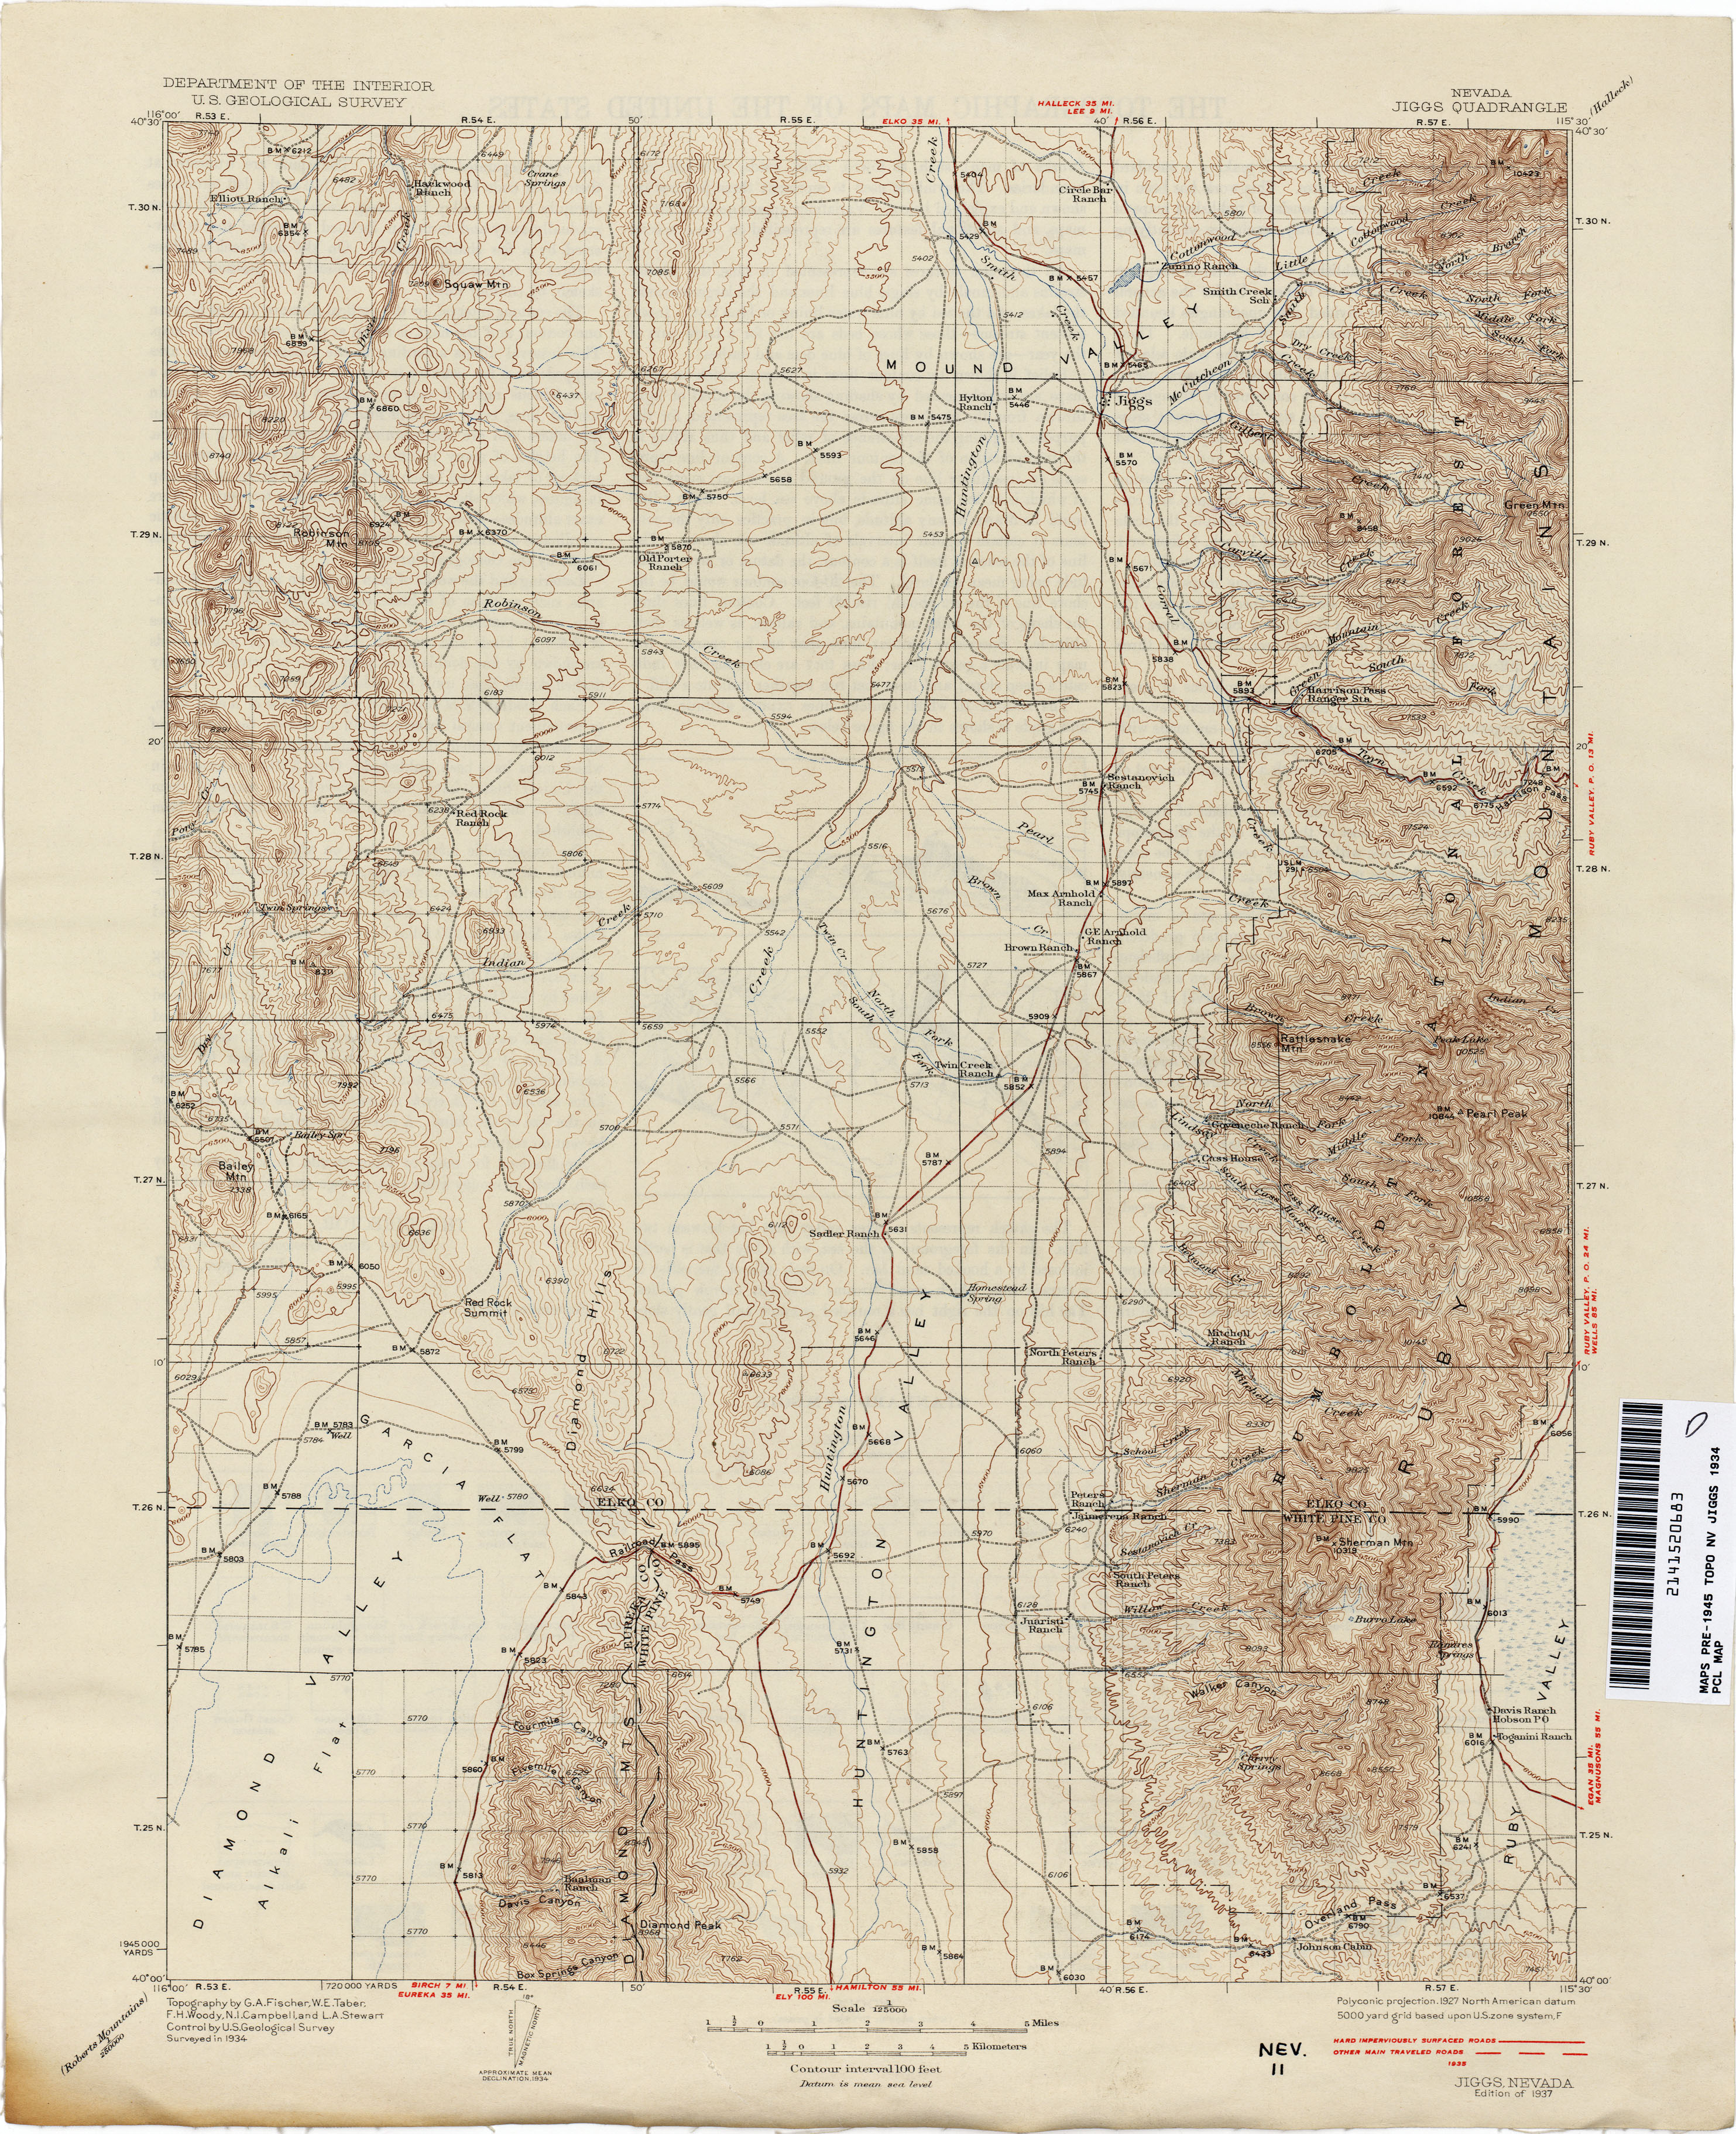 Nevada Historical Topographic Maps - Perry-Castañeda Map Collection on map of east las vegas nevada, map of pahrump nevada, map of reno nevada, map of laughlin nevada, map of lund nevada, map of washoe valley nevada, map of winnemucca nevada, map of stateline nevada, map of moapa nevada, map of winchester nevada, map of washoe county nevada, map of round mountain nevada, map of white pine county nevada, map of crescent valley nevada, map of elko nevada, map of henderson nevada, detailed map nevada, map of mt charleston nevada, map of minden nevada, map of tonopah nevada,